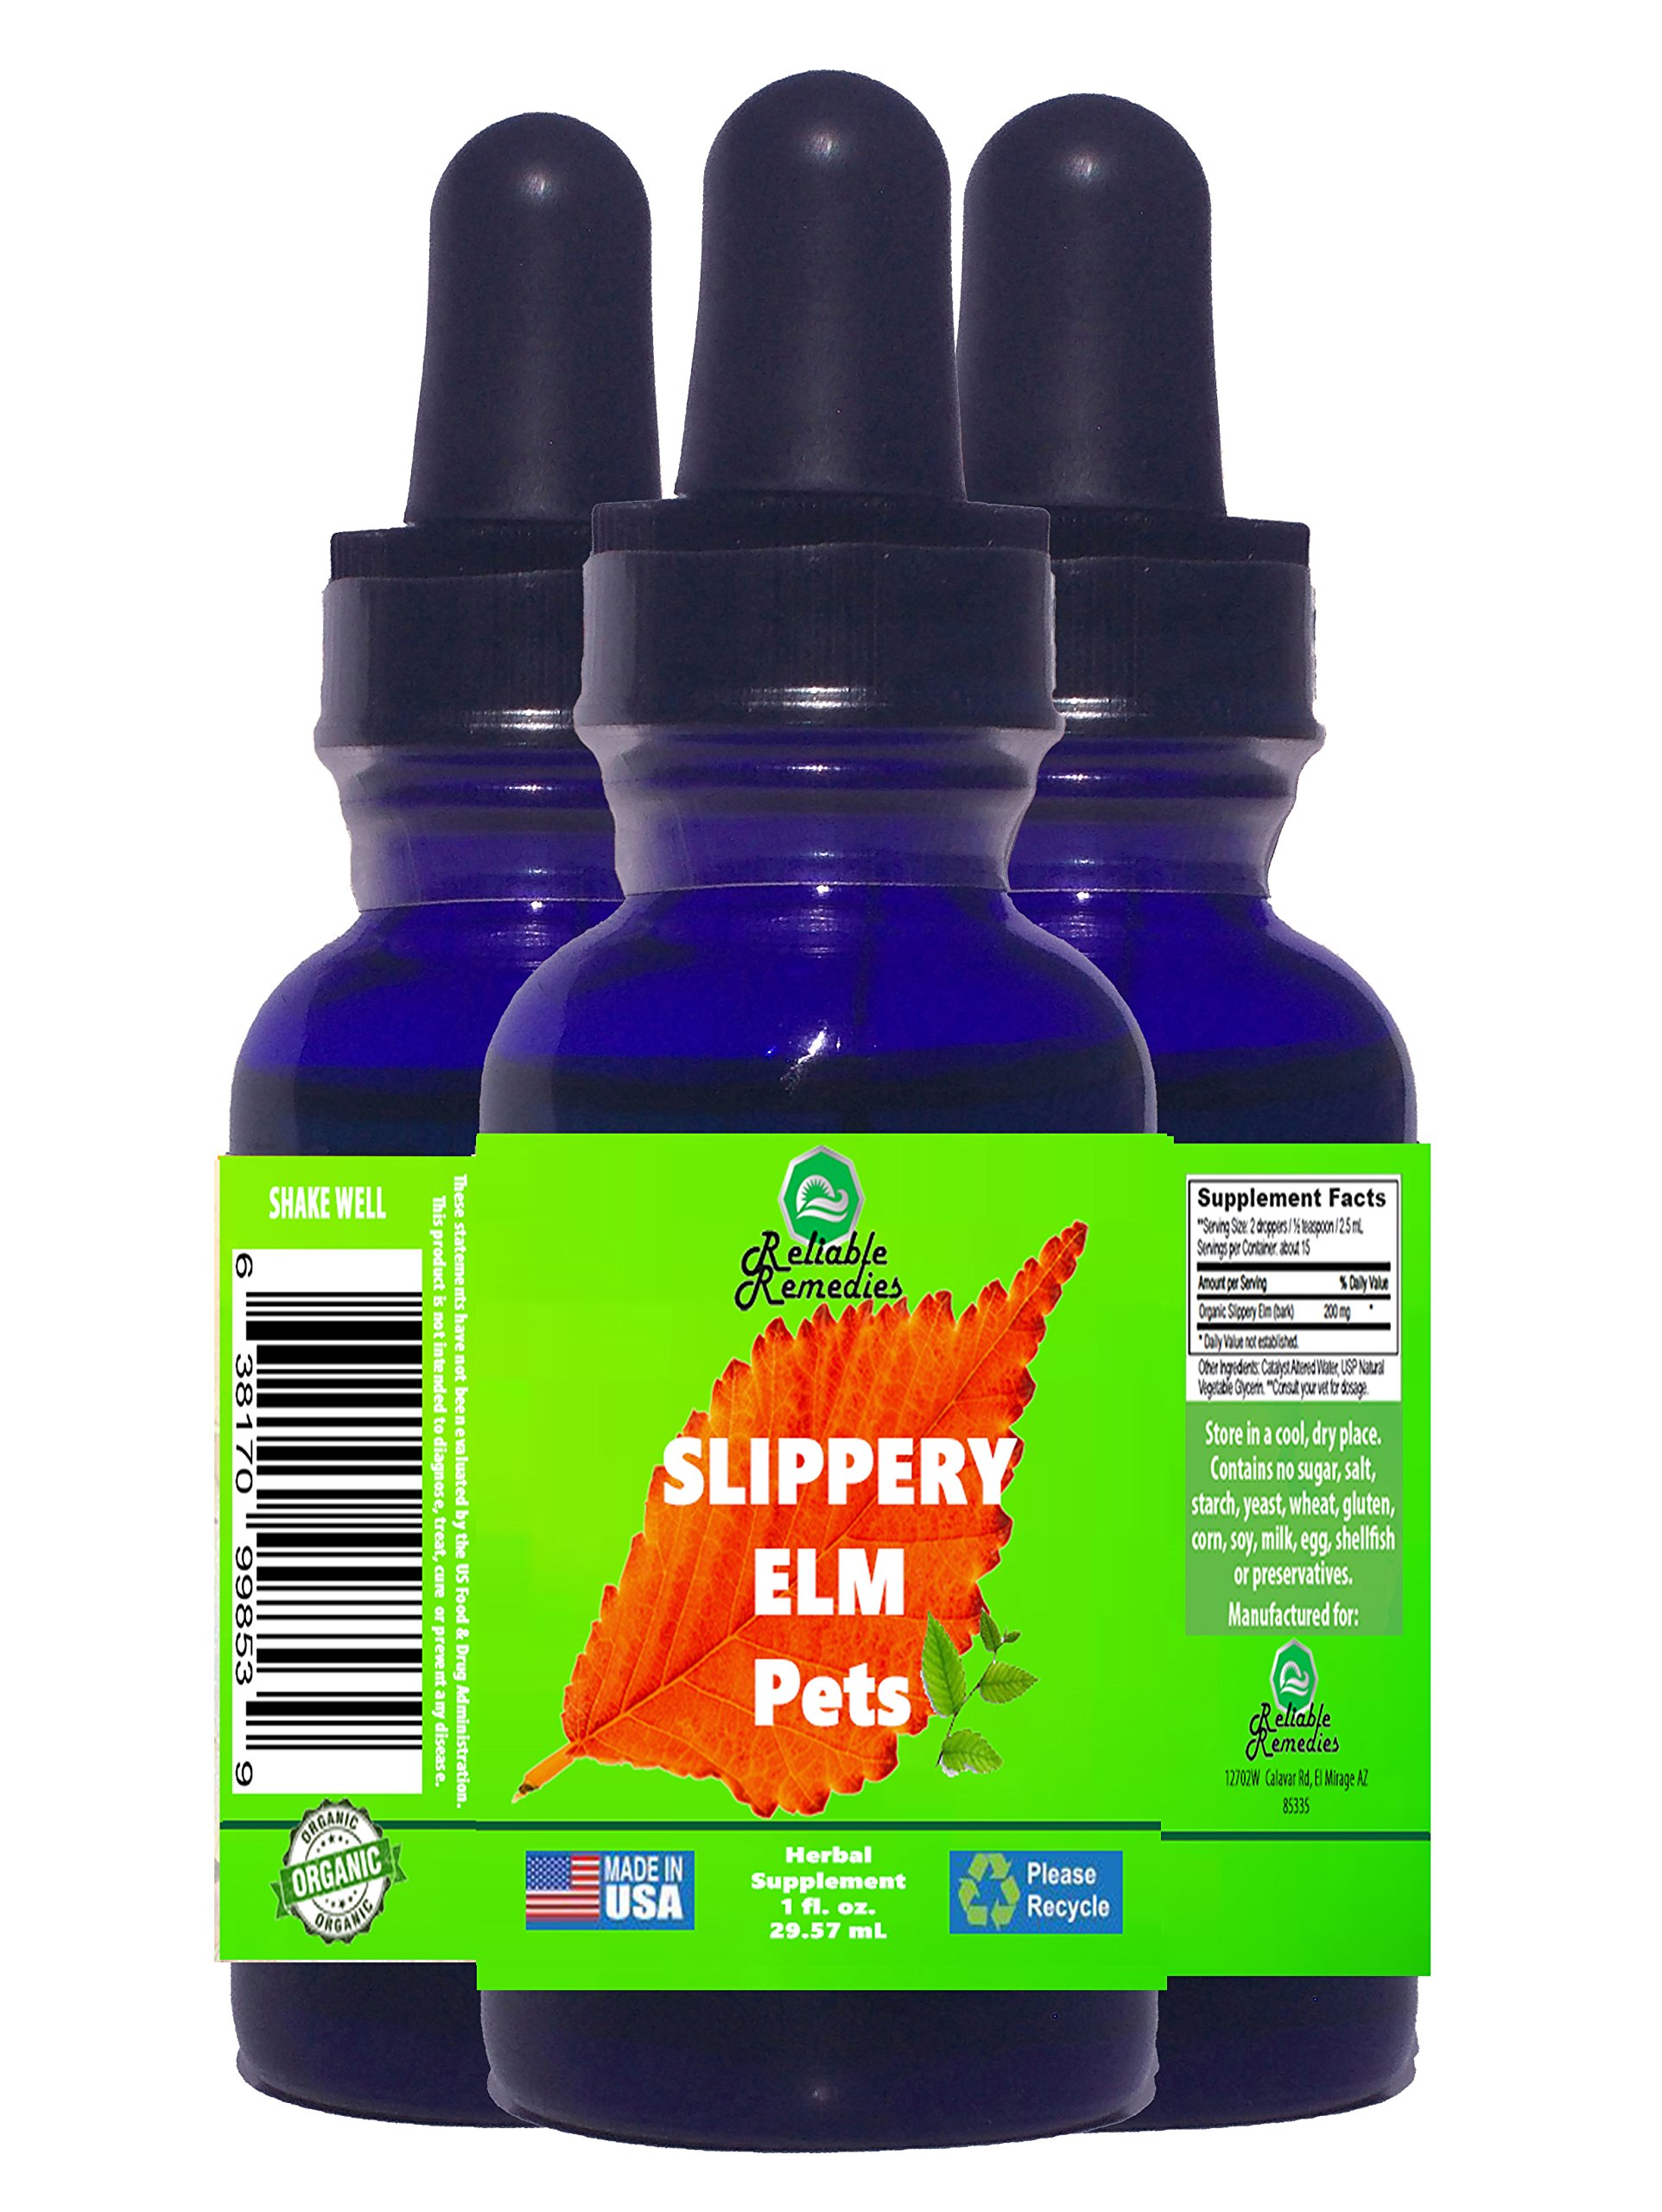 SLIPPERY ELM for PETS from ''RELIABLE REMEDIES'' - 1 Ounce - MADE IN AMERICA! - Protect Yourself! - 100% MONEY BACK GUARANTEE!**BUY THIS BEST SLIPPERY ELM BRAND NOW!